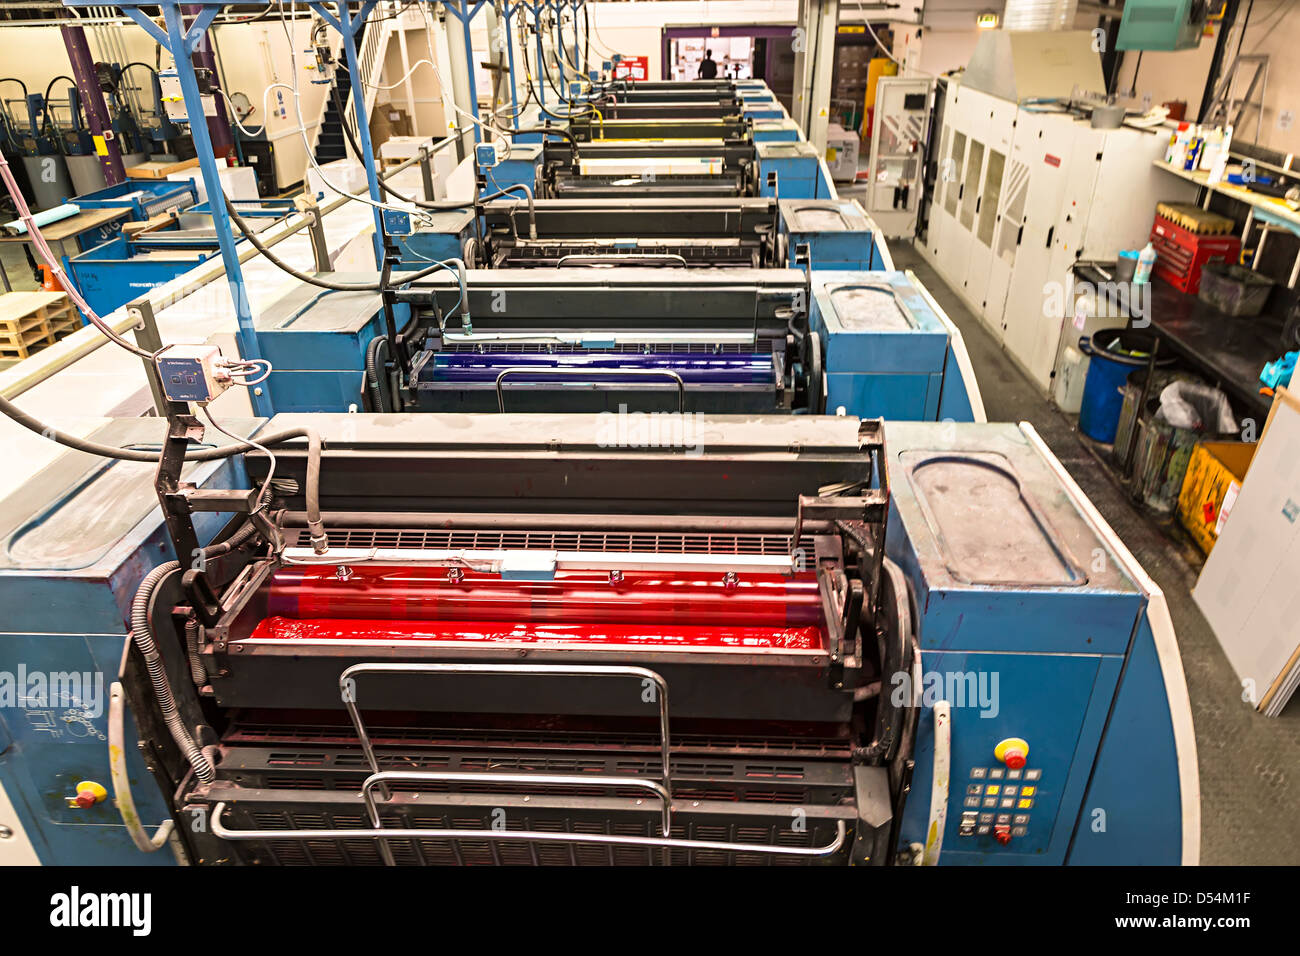 Offset litho printing press showing magenta, cyan, yellow and black inks applied from rollers, Aberystwyth, Wales, - Stock Image